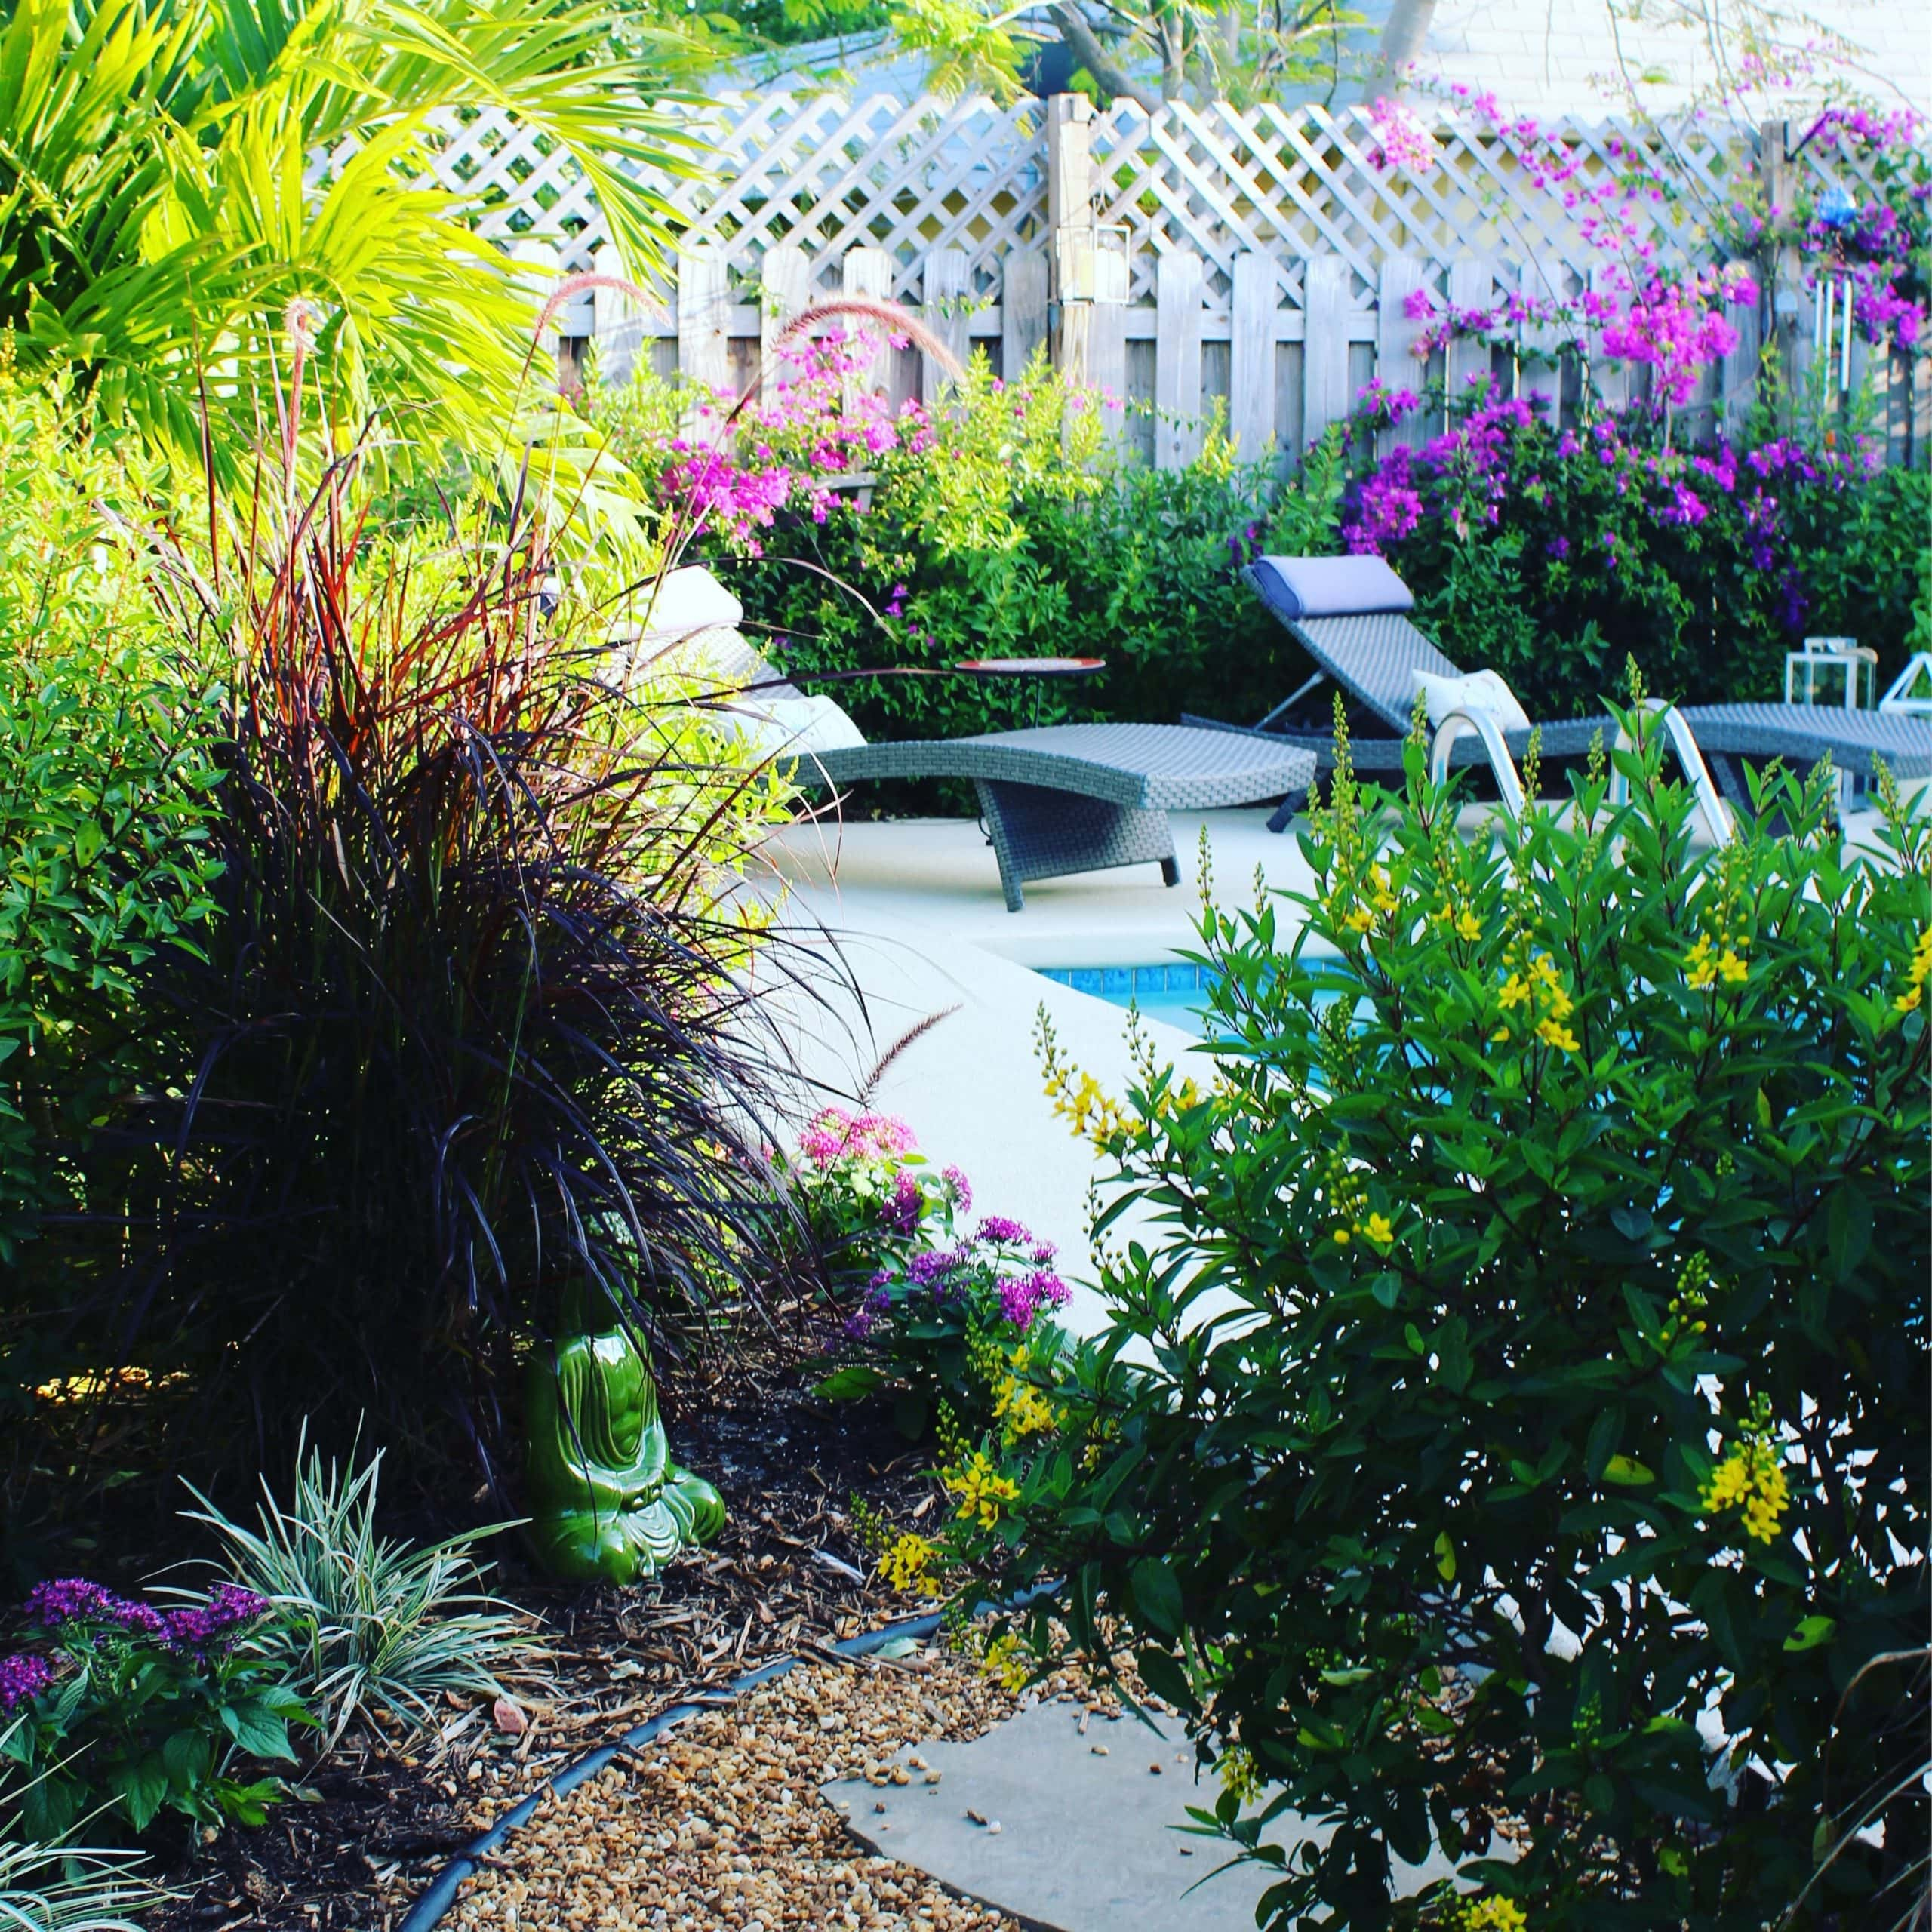 4 Easy Ways To Give Your Home a Stunning Curb Appeal Makeover